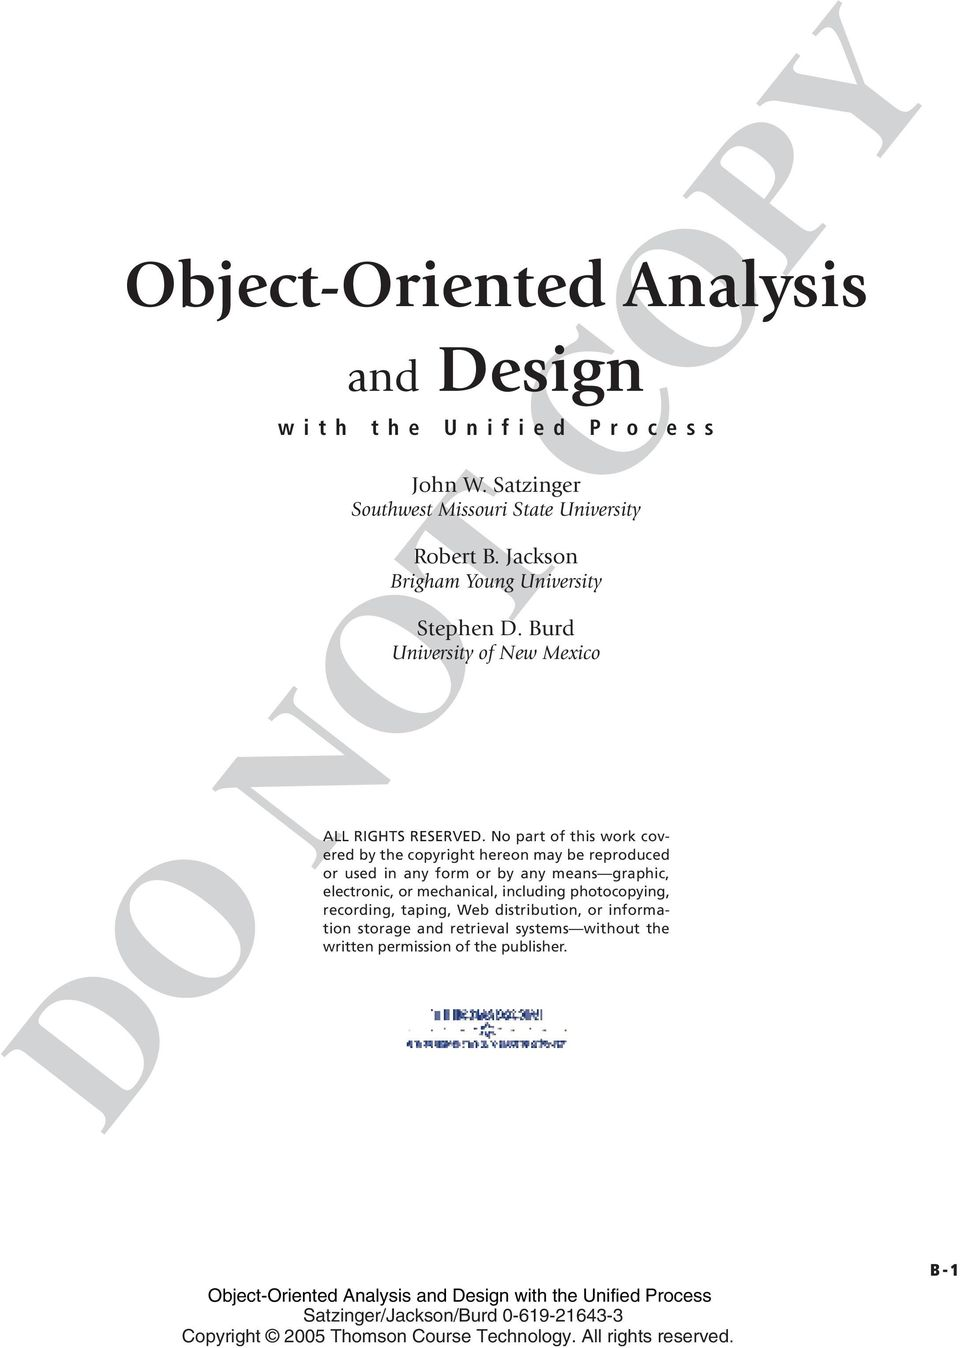 Object Oriented Analysis With The Unified Process John W Satzinger Southwest Missouri State University Robert B Jackson Brigham Young University Pdf Free Download